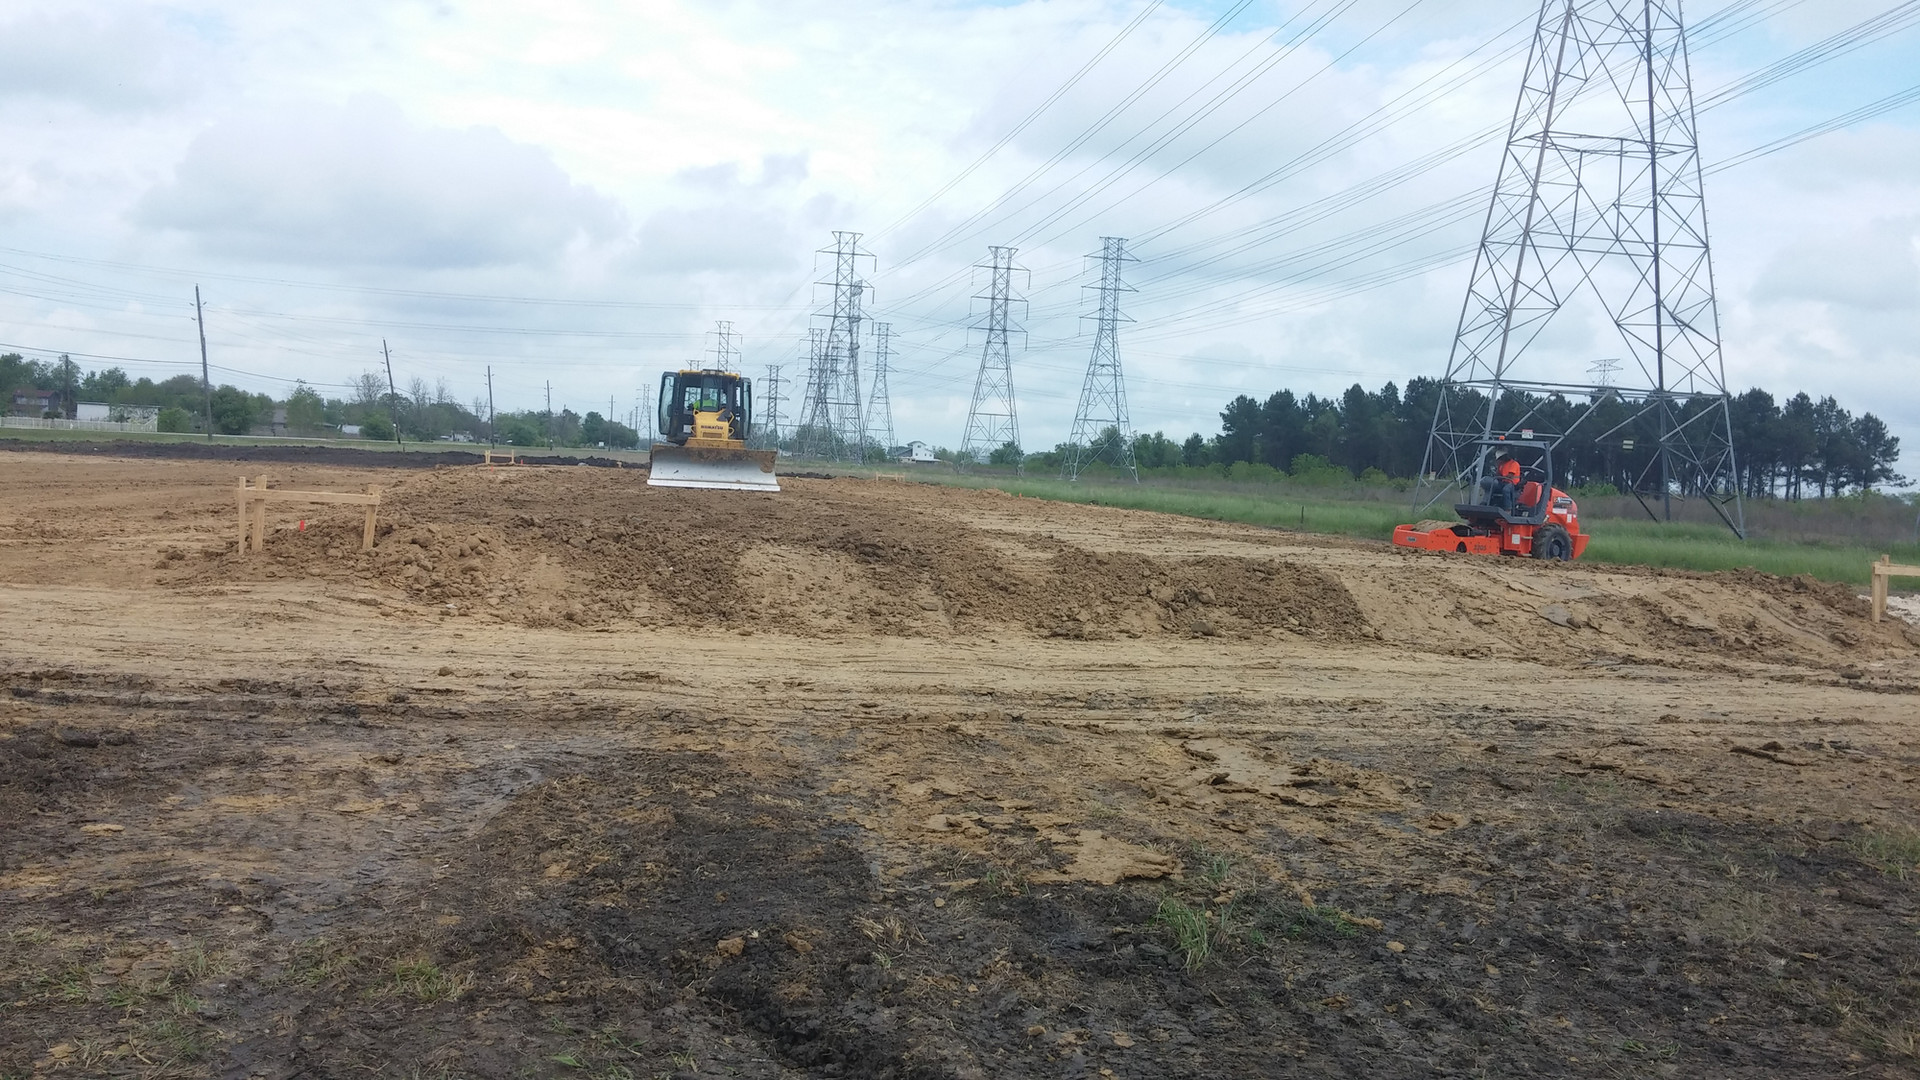 pad site with dozer and roller in distance